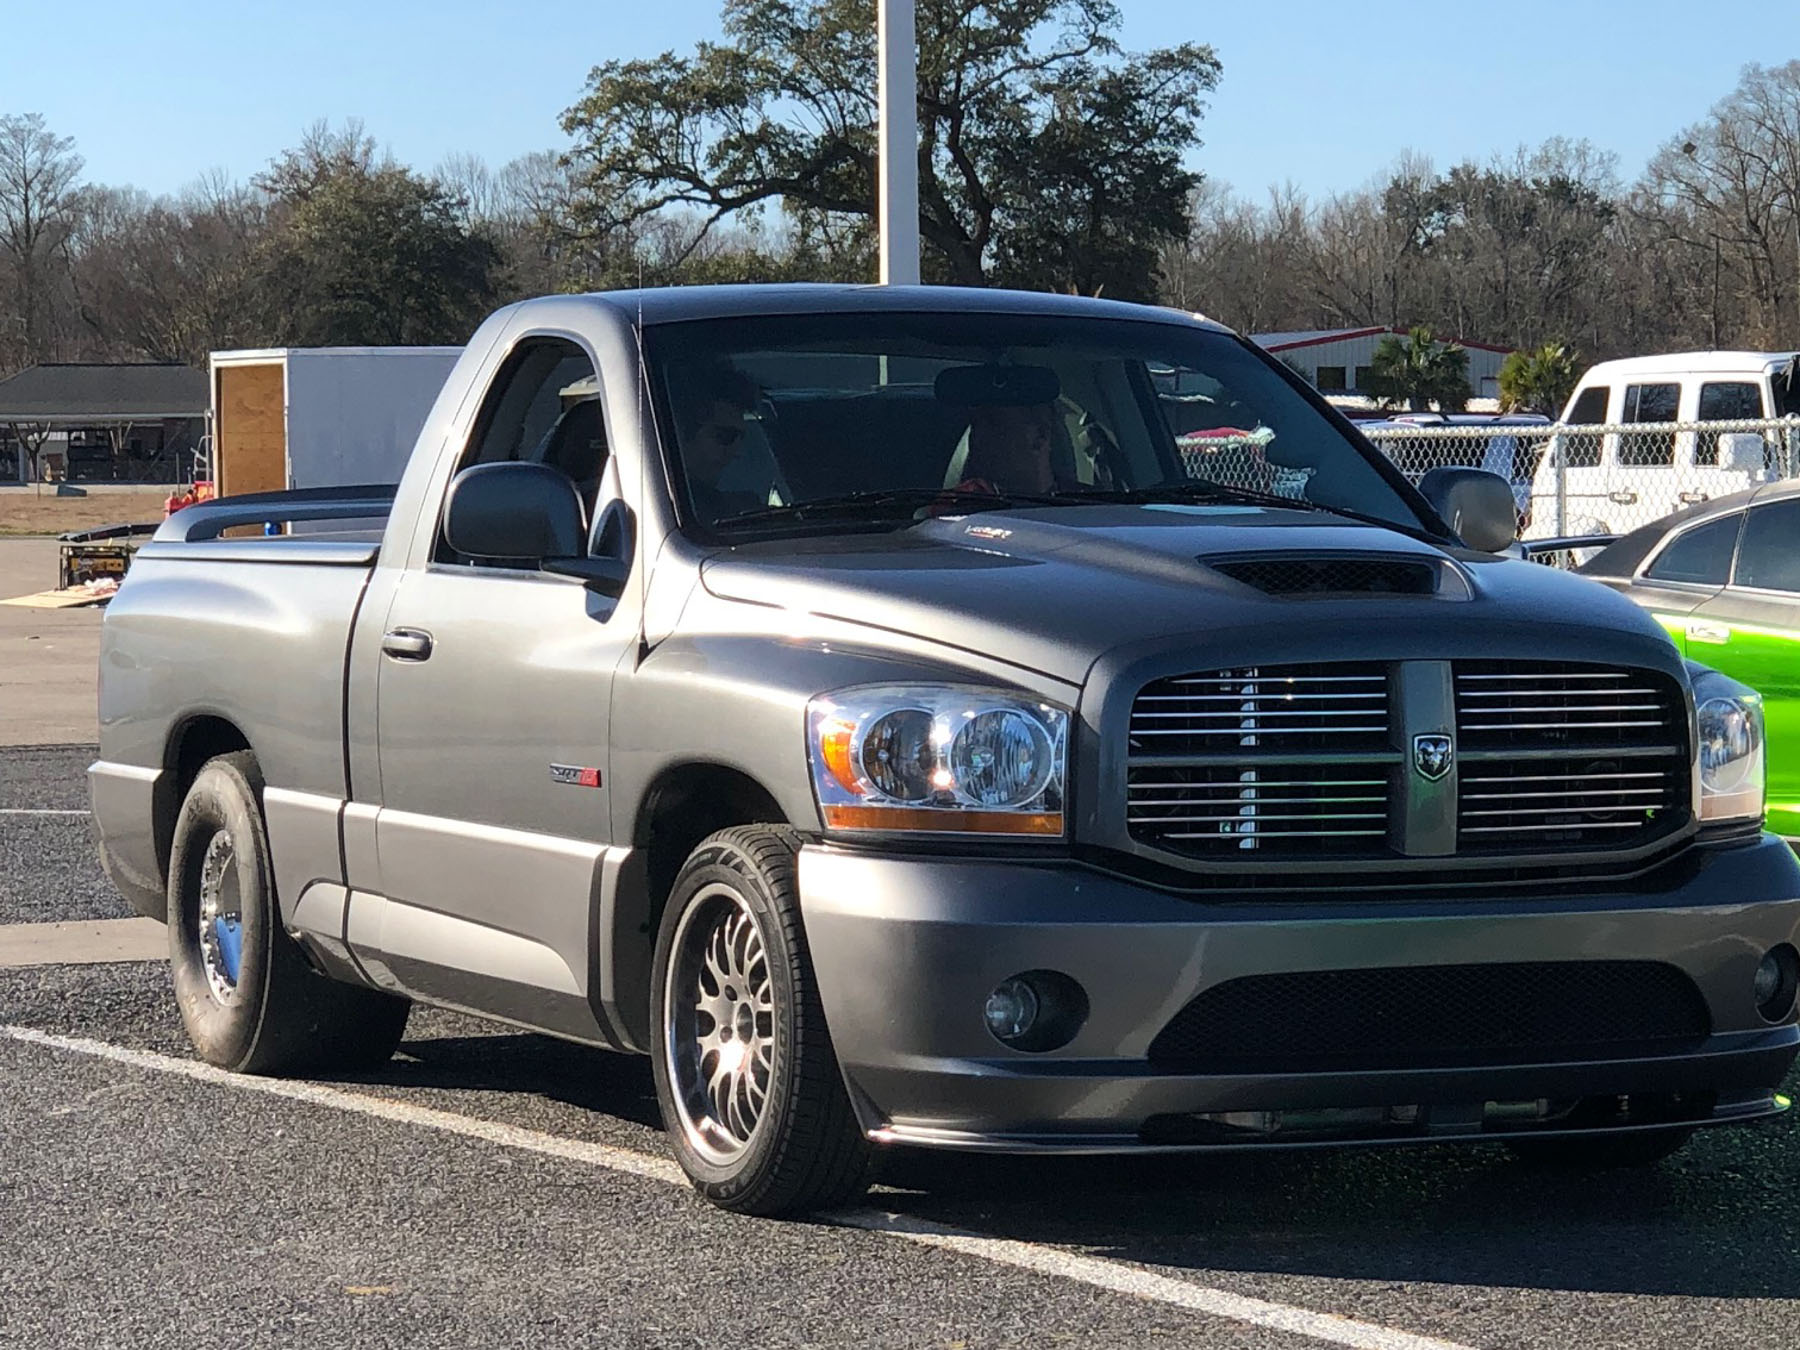 The Rowdy Ram Johnny Young S Twin Turbo Srt 10 Pickup Truck